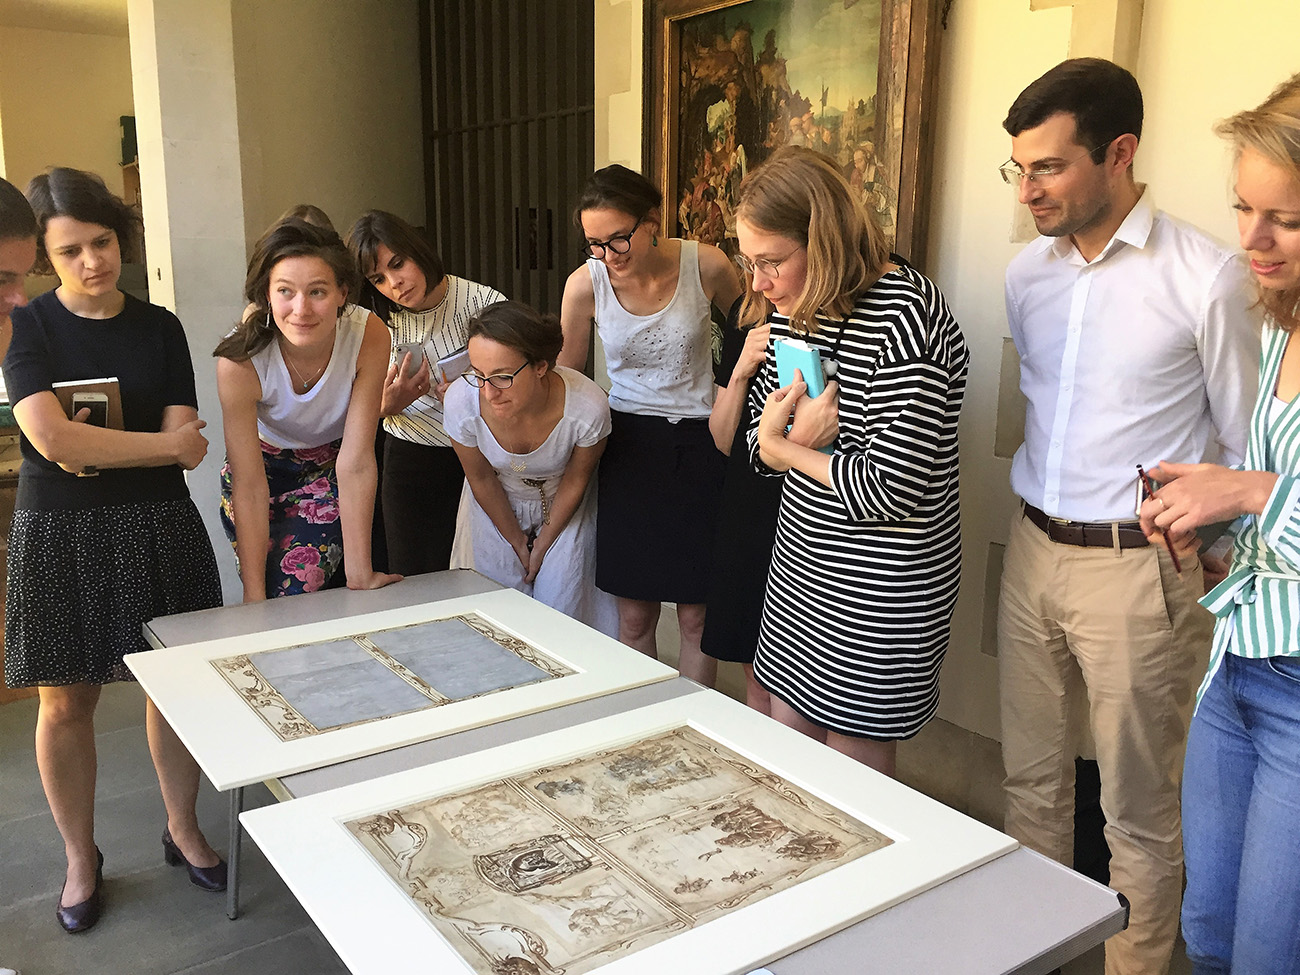 Participants examine Old Masters drawings.